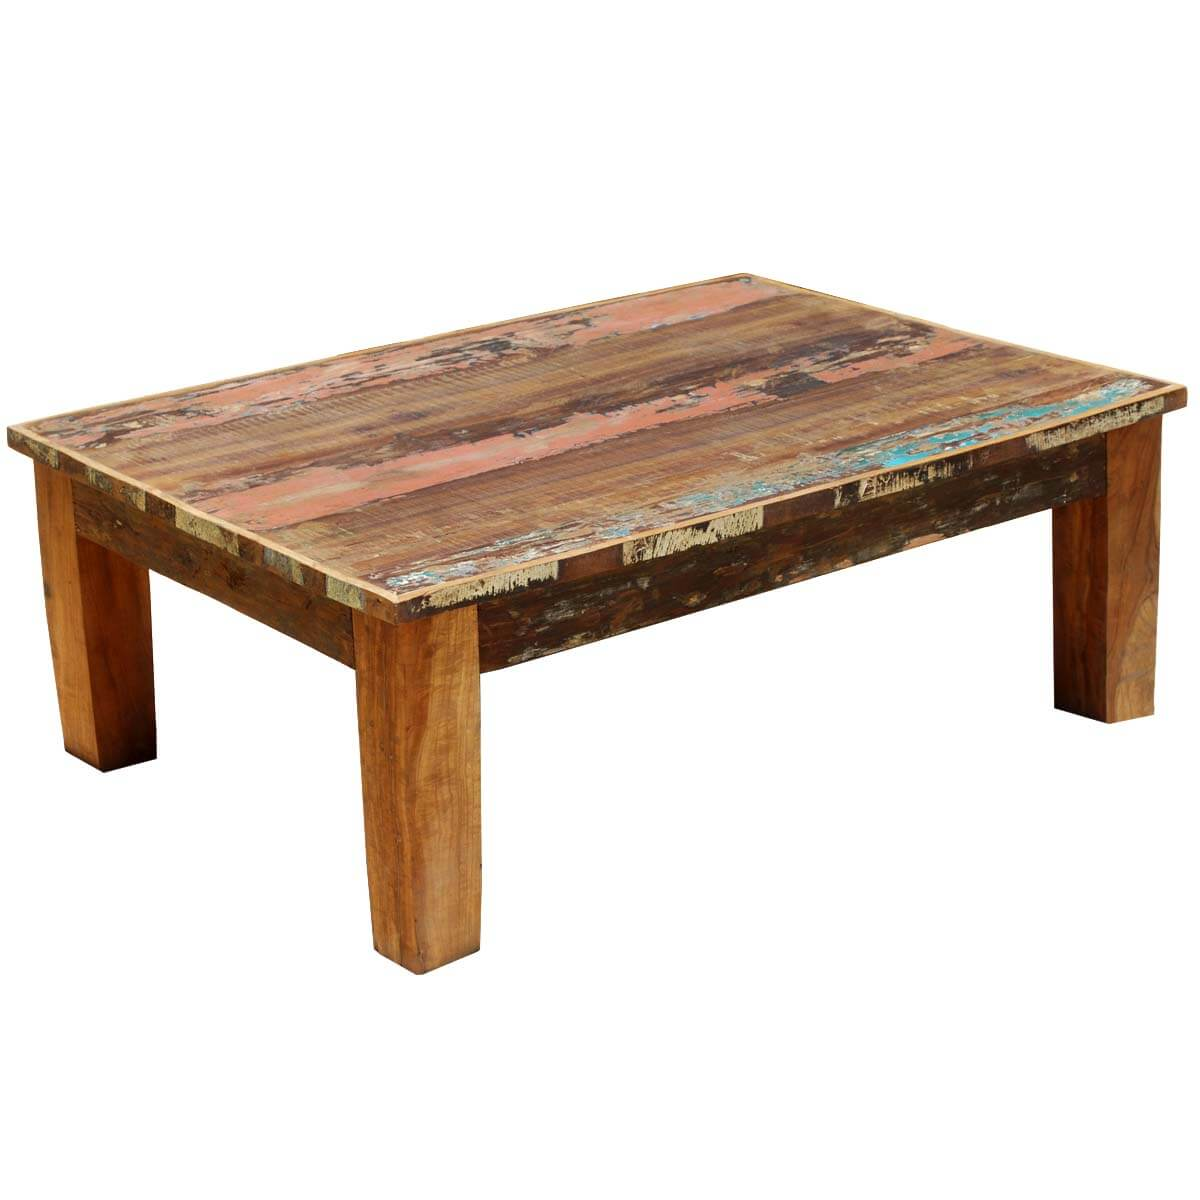 Appalachian rustic mixed reclaimed wood coffee table Recycled wood coffee table